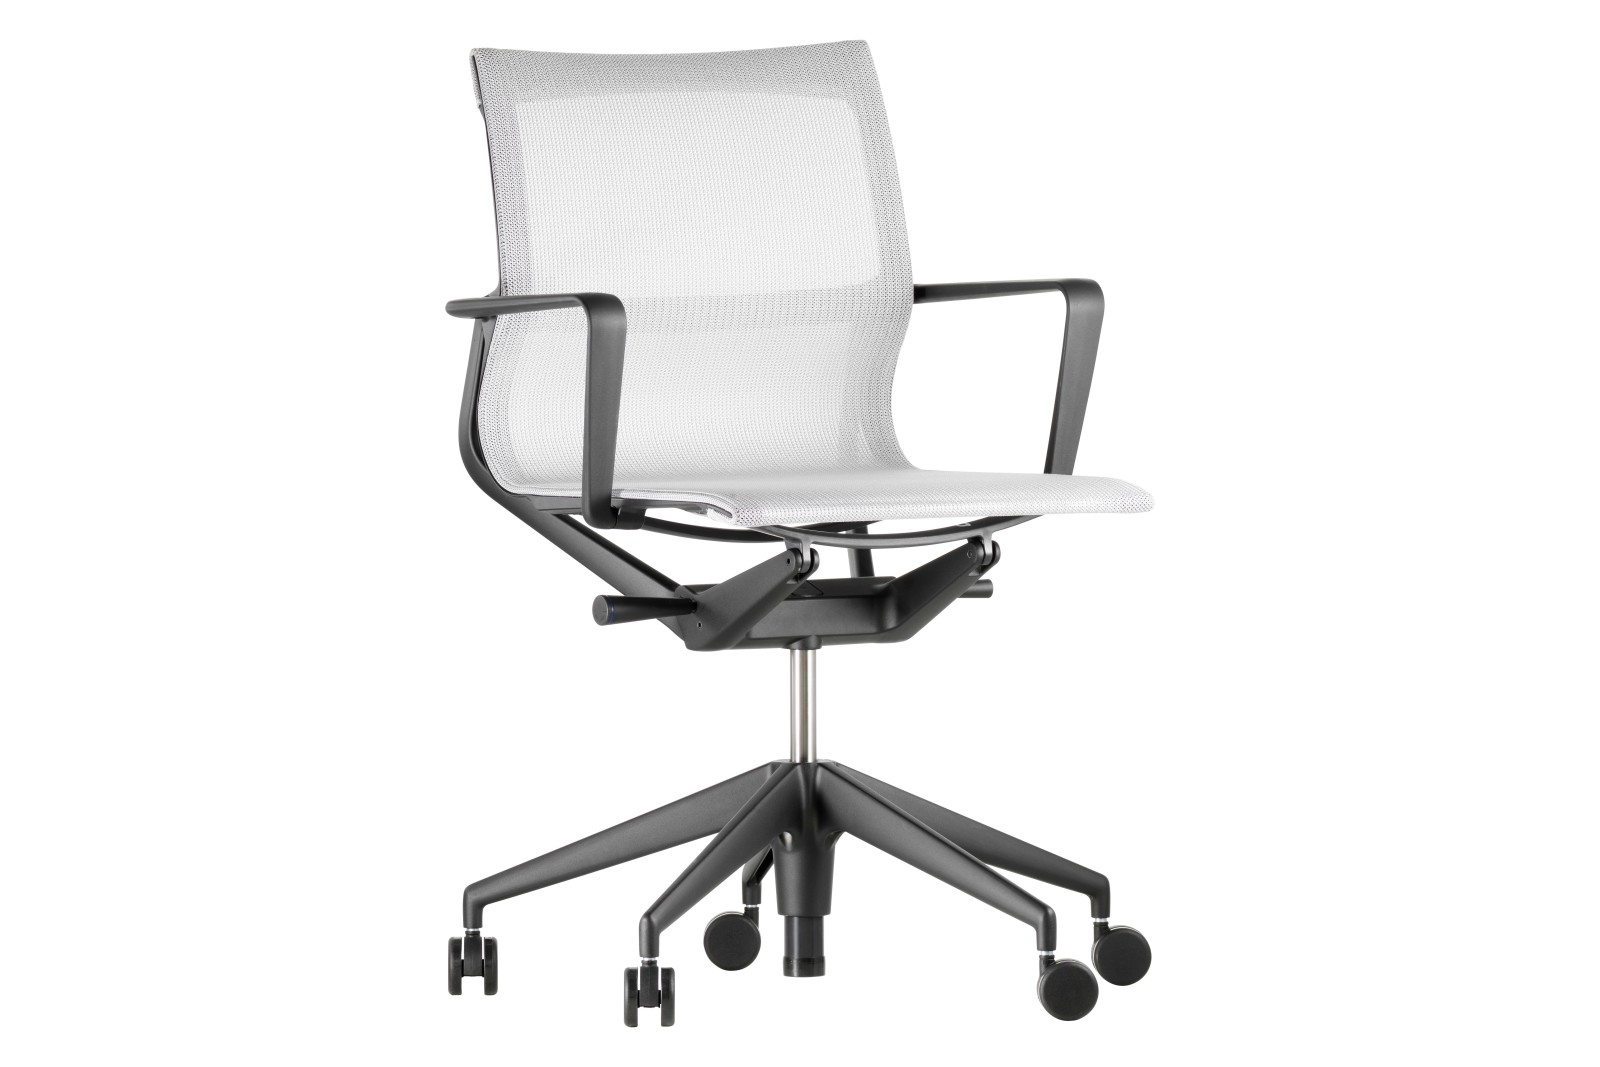 Physix Five - Star Base Office Chair TrioKnit 01 silver, Aluminium base coated in deep black, 02 cas